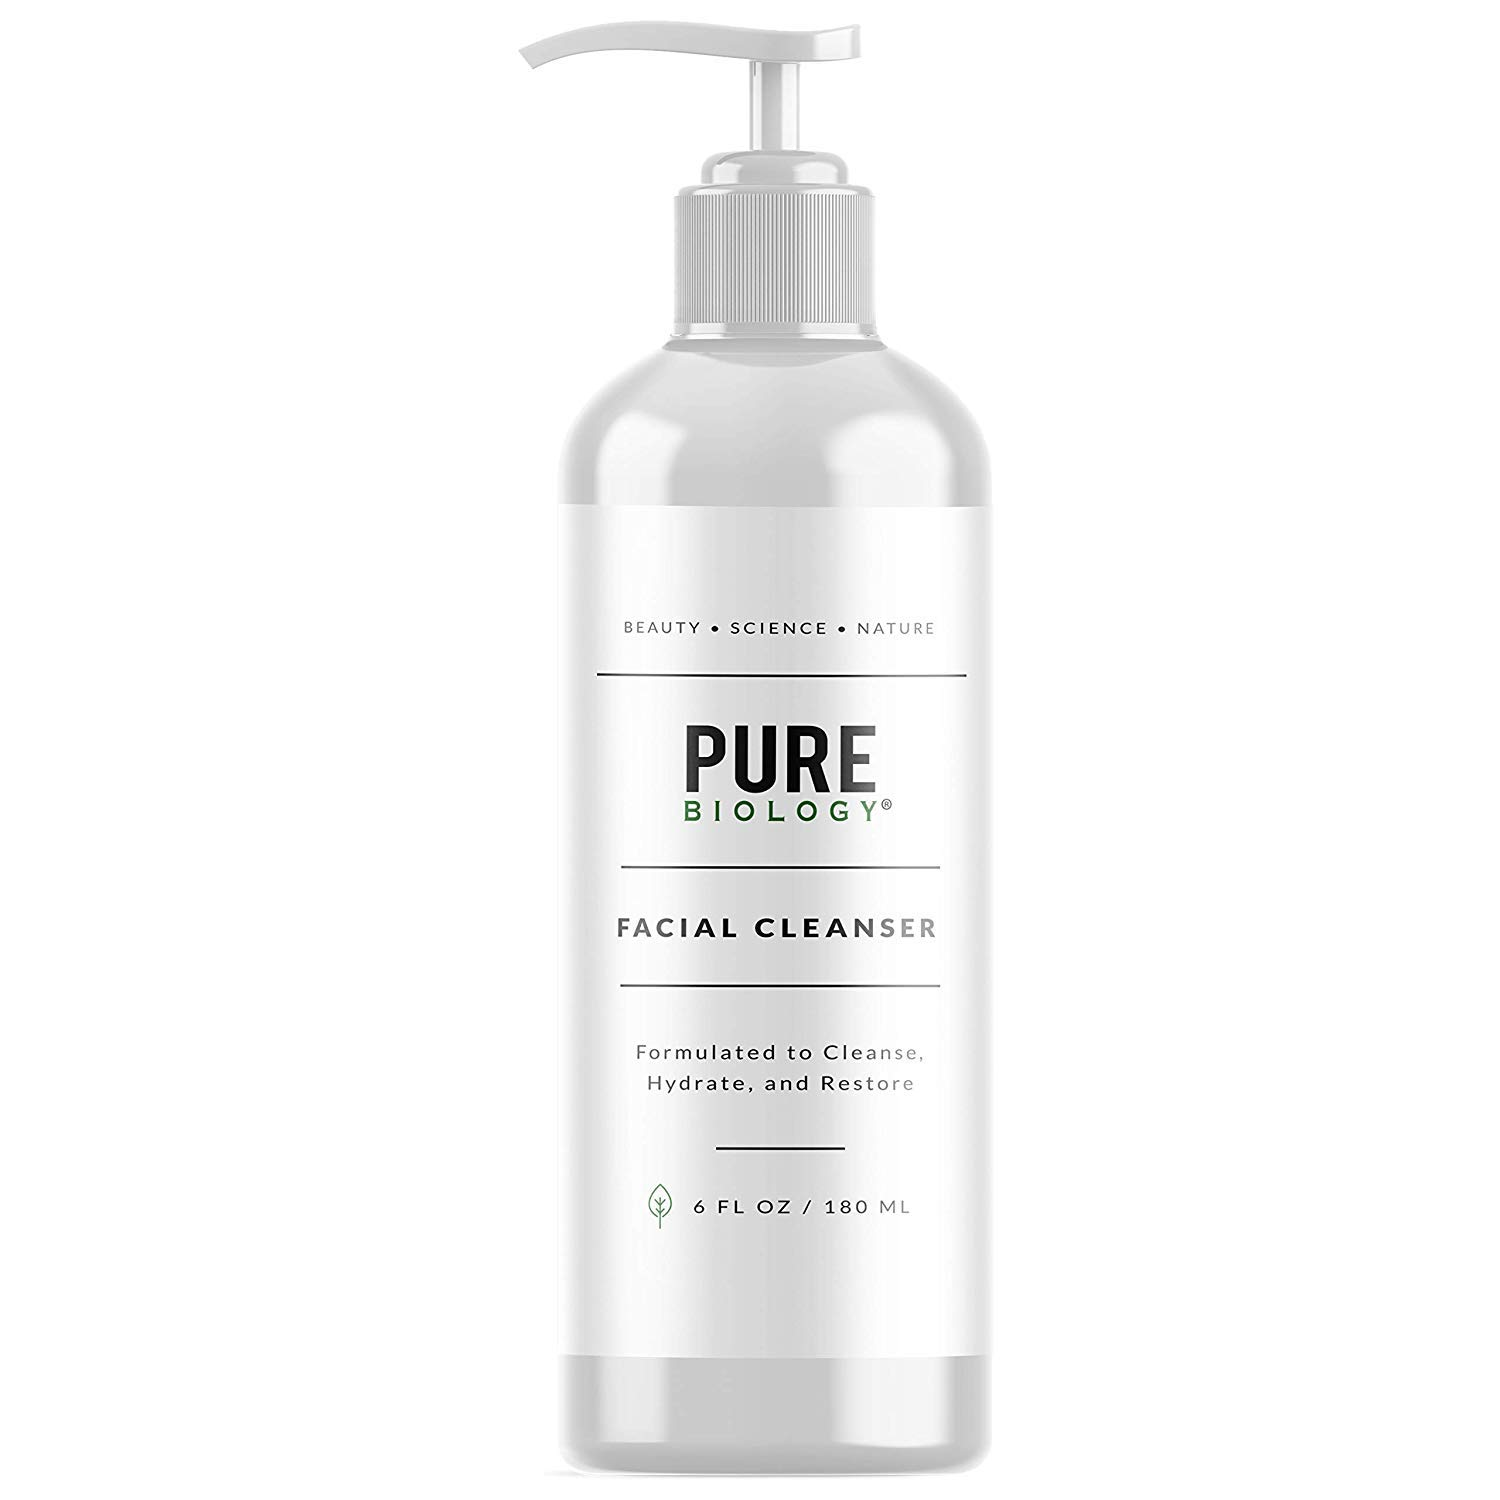 [Pure Biology] [Premium Facial Cleanser with Hyaluronic Acid, Natural Essential Oils & Anti Aging Complex – Face Wash Firms, Tightens Wrinkles, Lightens Dark Circles, Dark Spots] (並行輸入品) B07RFGFKZX  one size